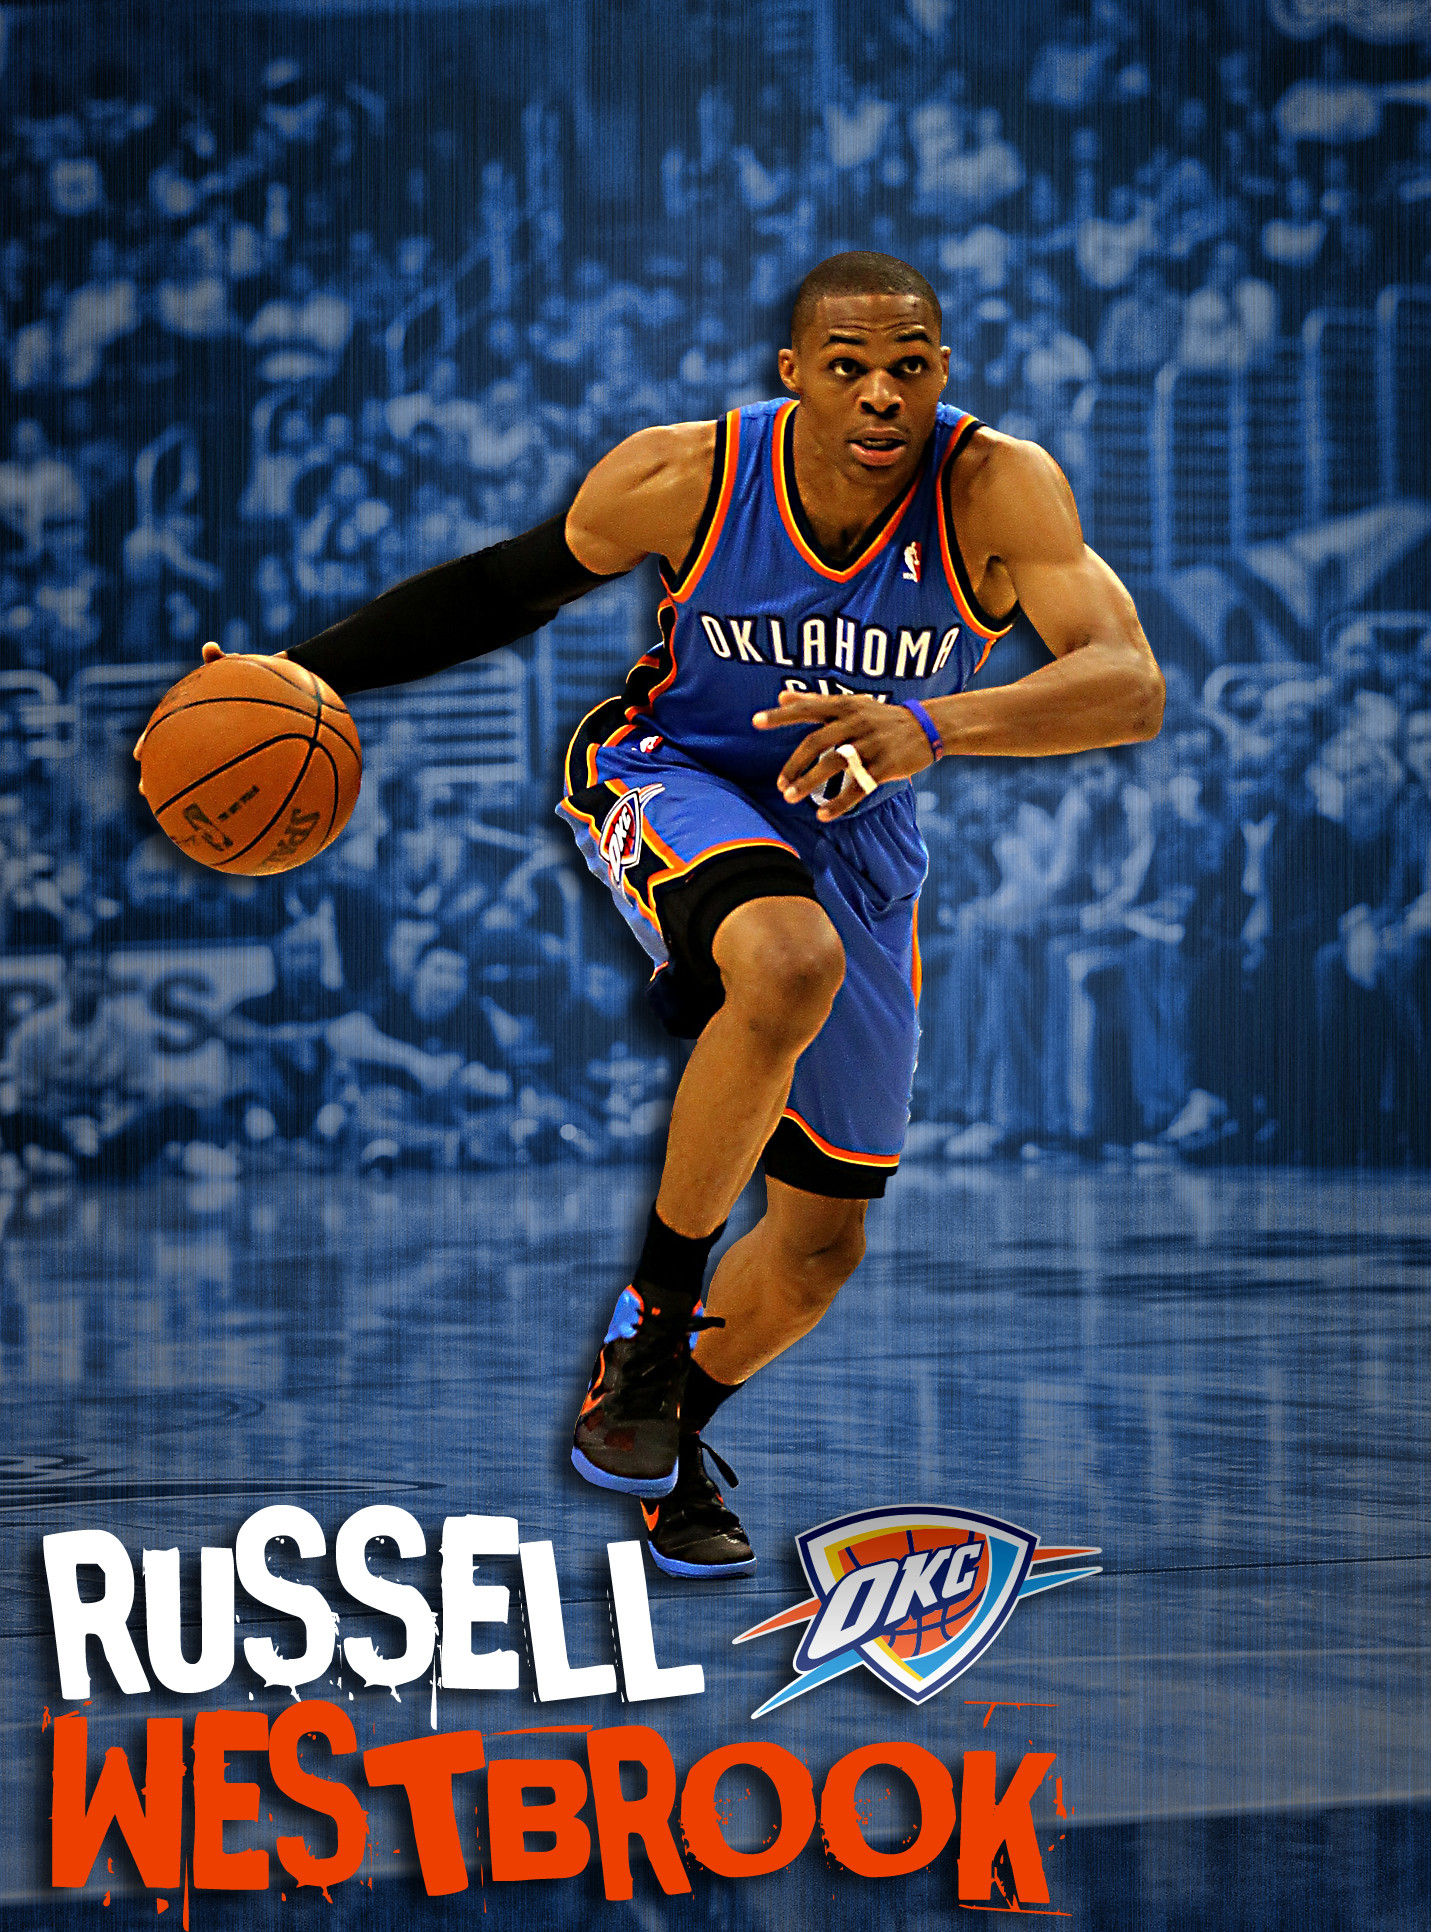 Russell Westbrook Dunking Wallpaper HD (73+ images)